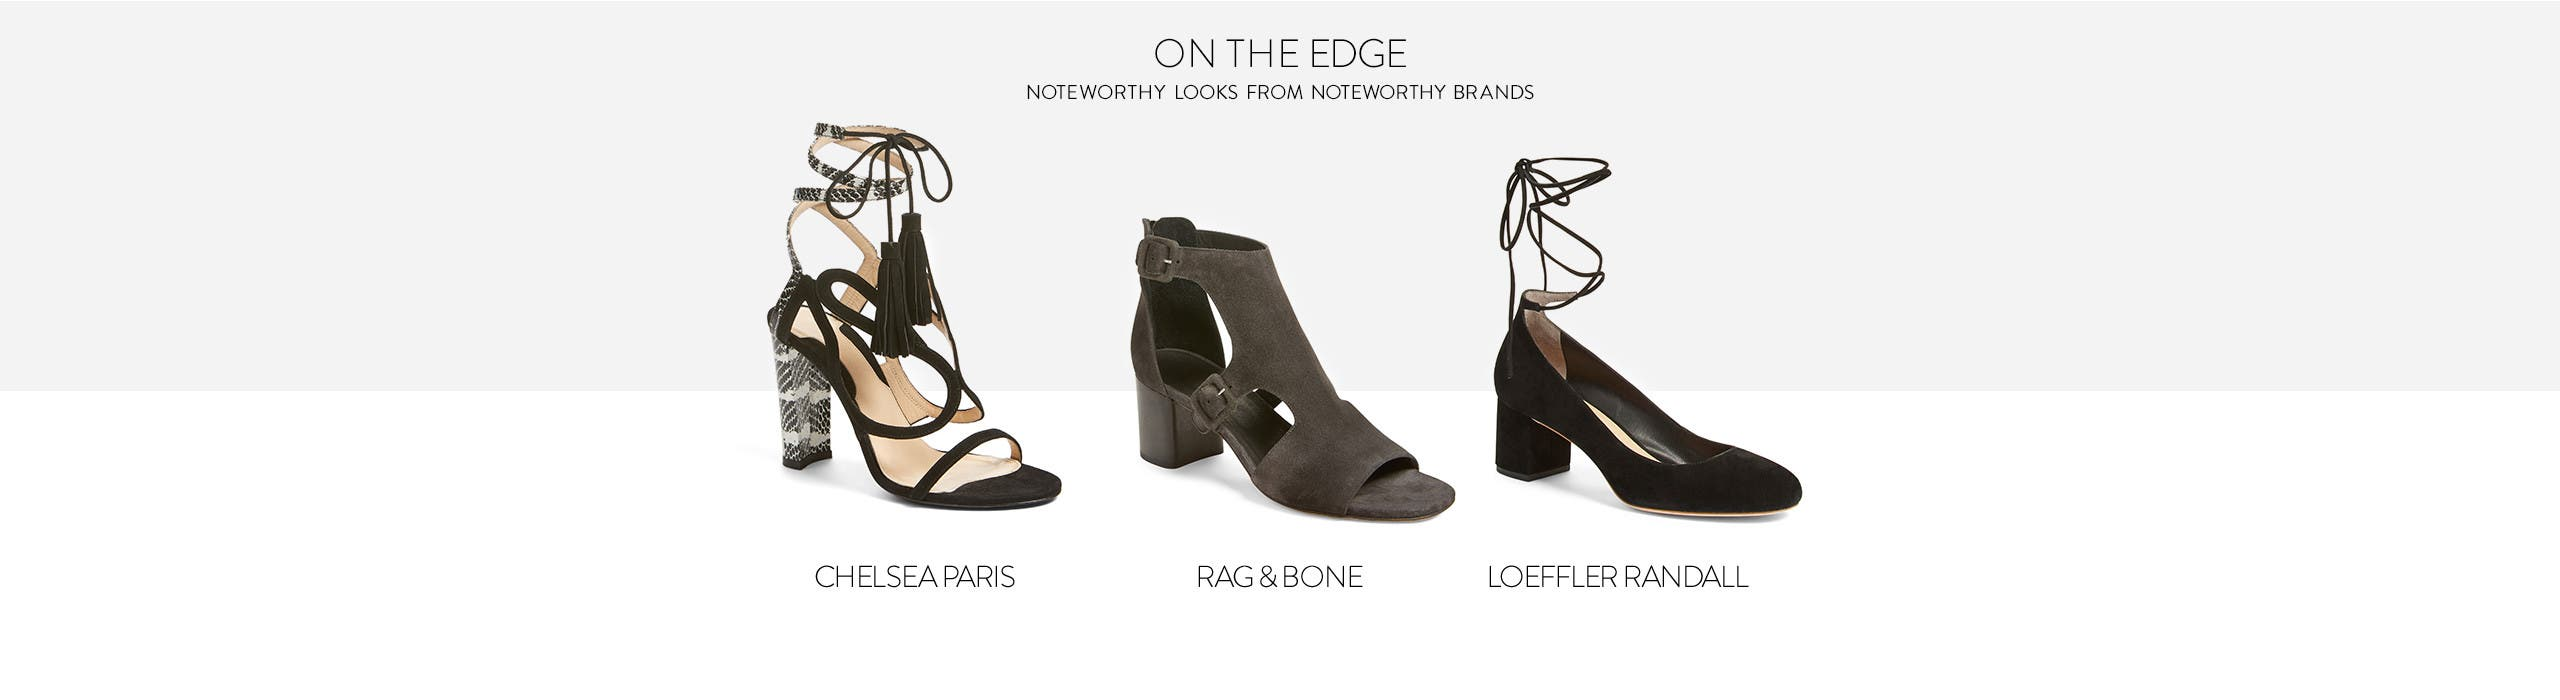 On the edge: noteworthy shoes from Chelsea Paris, rag & bone and Loeffler Randall.